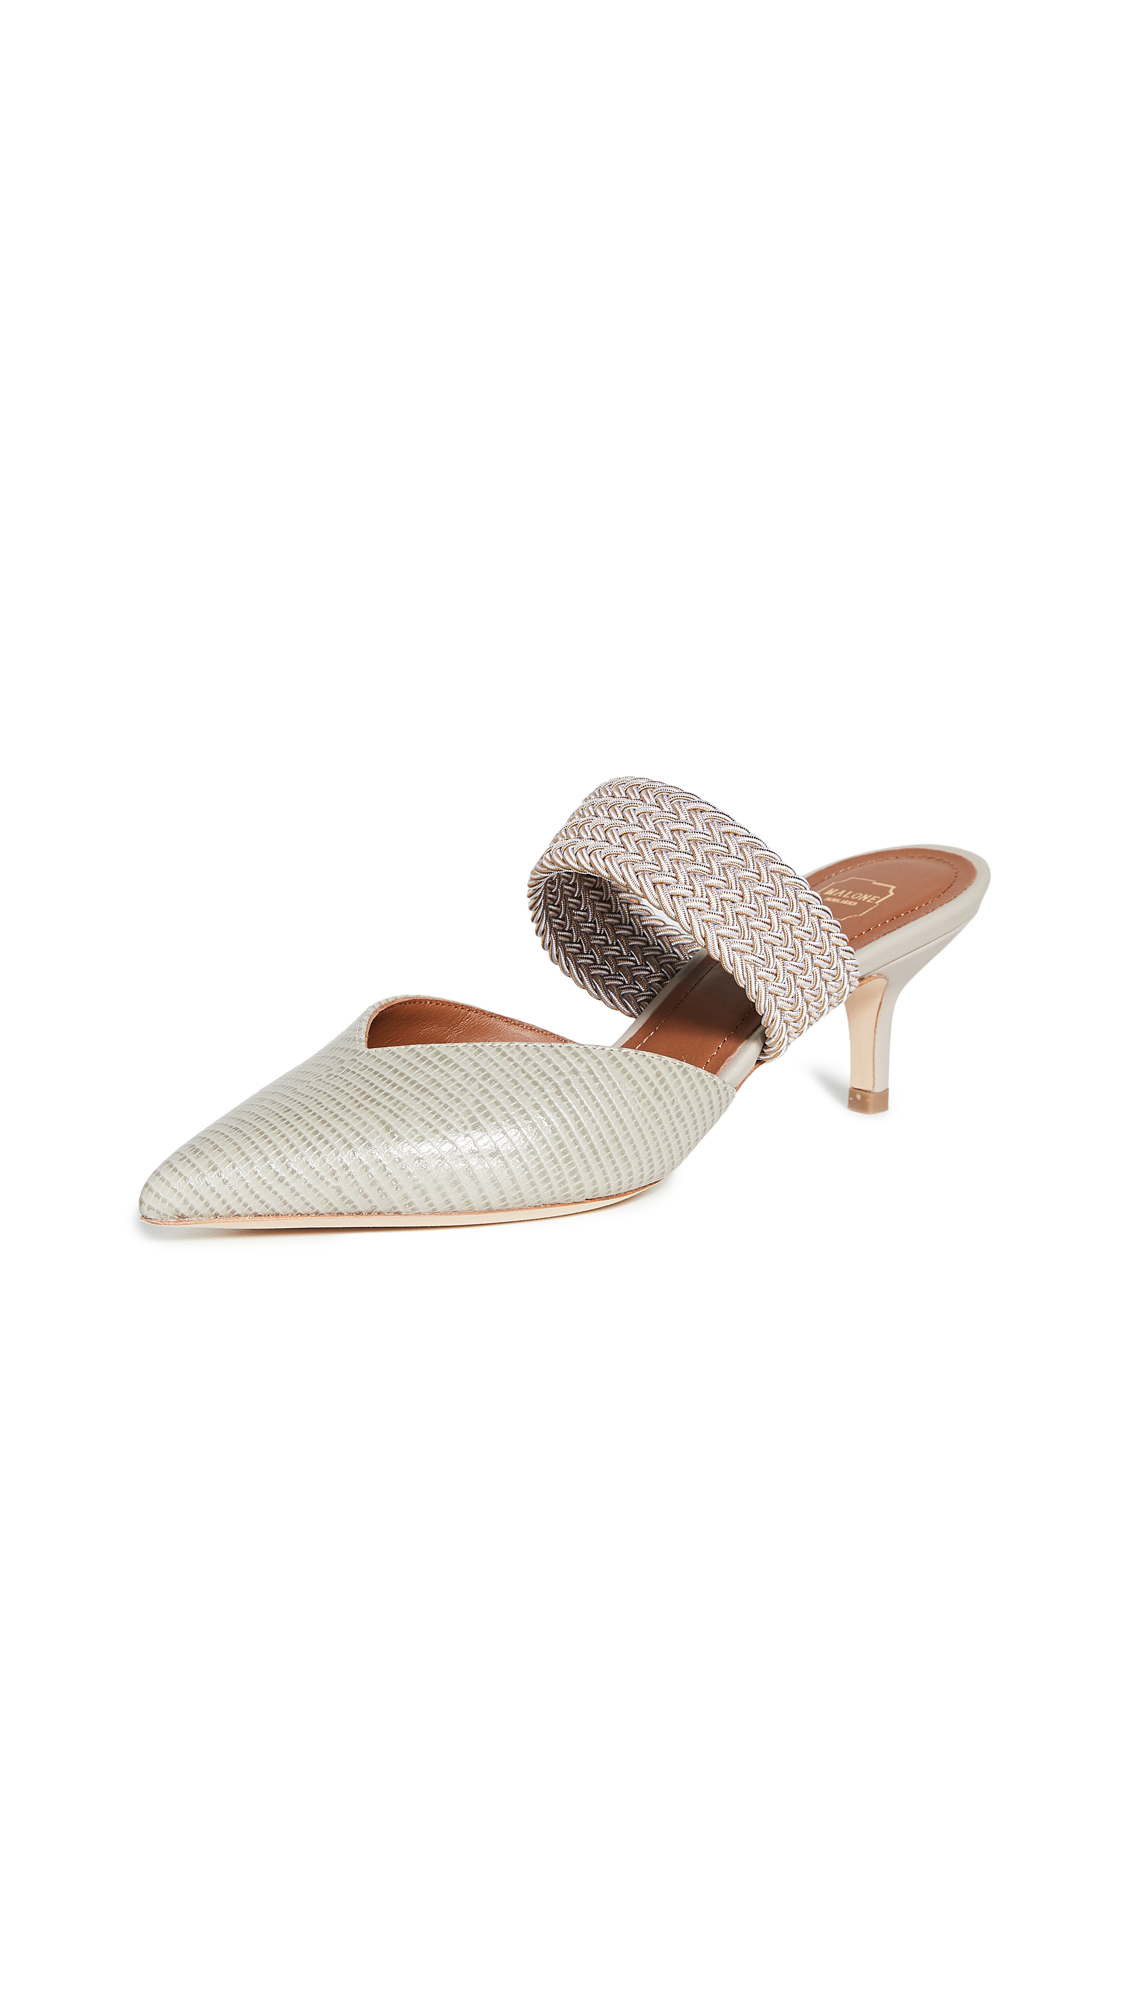 Buy Malone Souliers Maisie Mules 45mm online, shop Malone Souliers